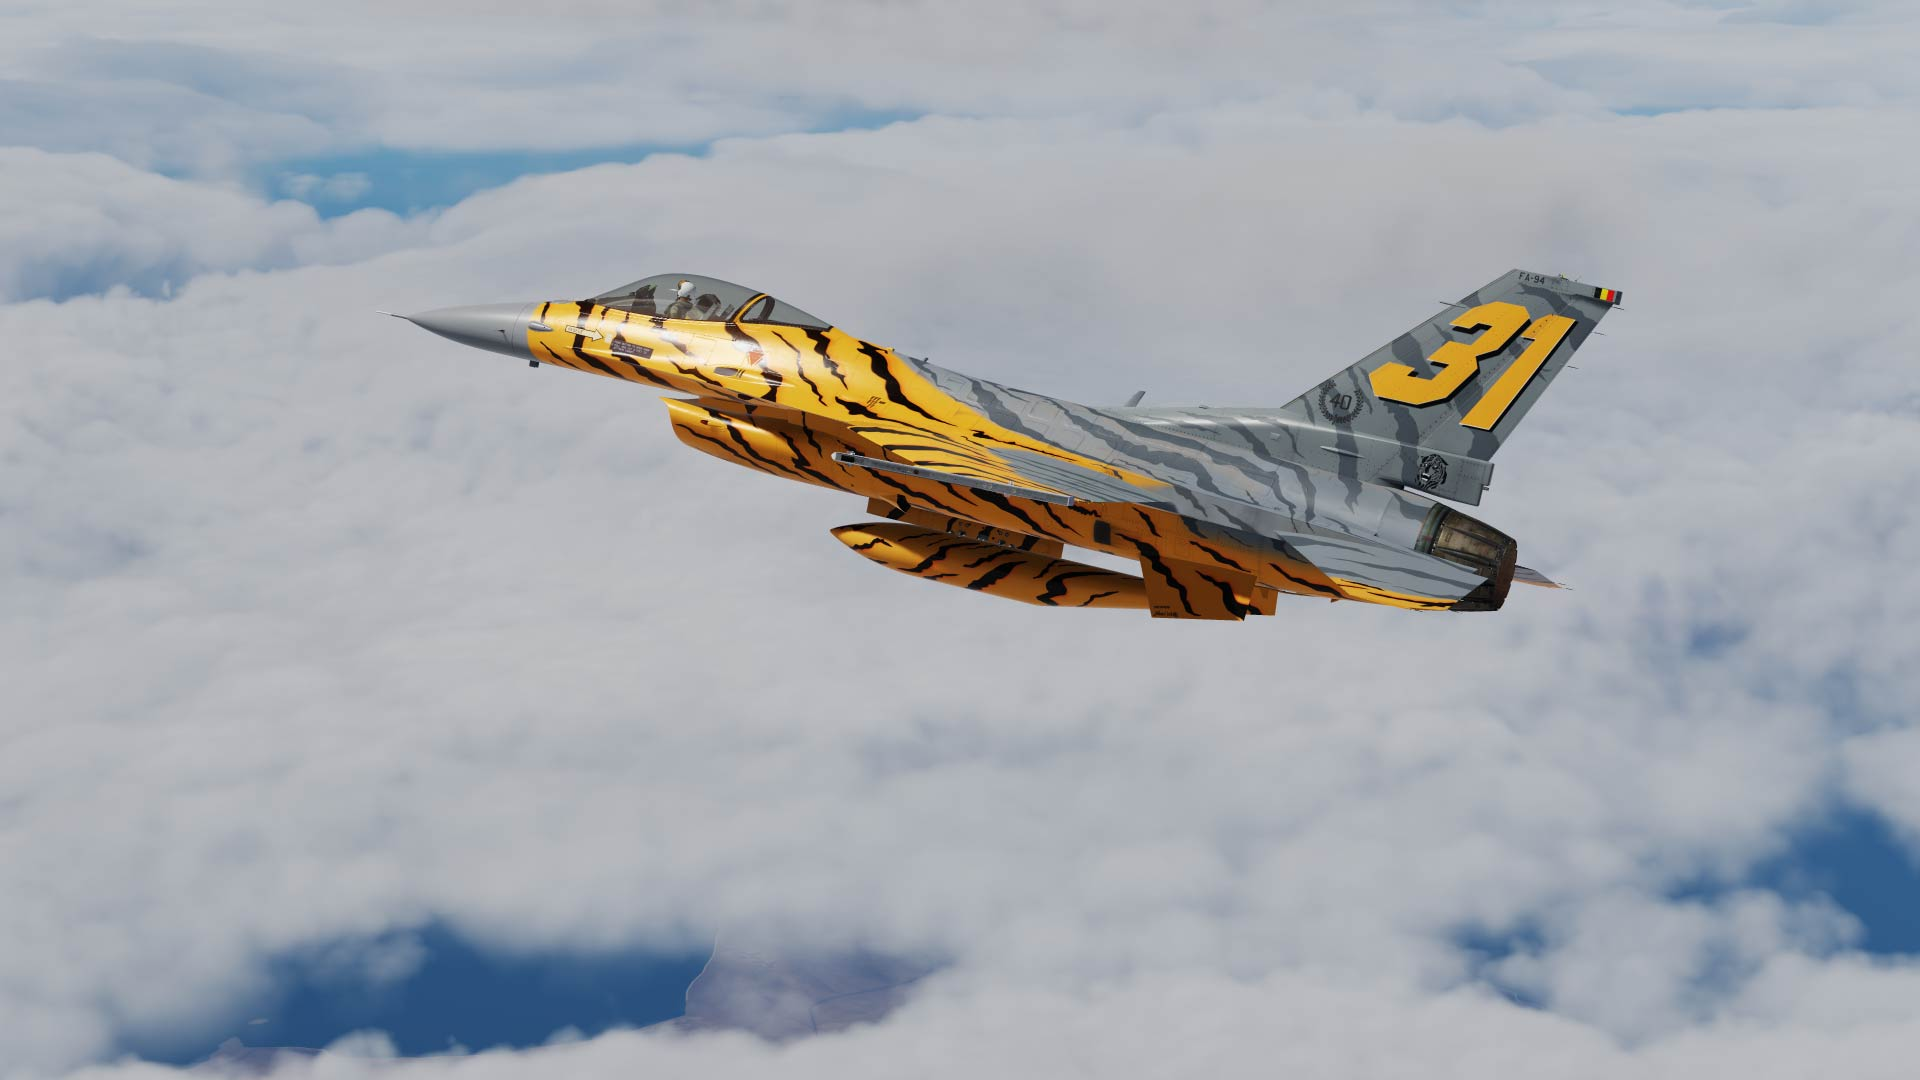 F-16 Belgian Air Force 1991 Tiger NTM V2.0 OVERHAULED UPDATE